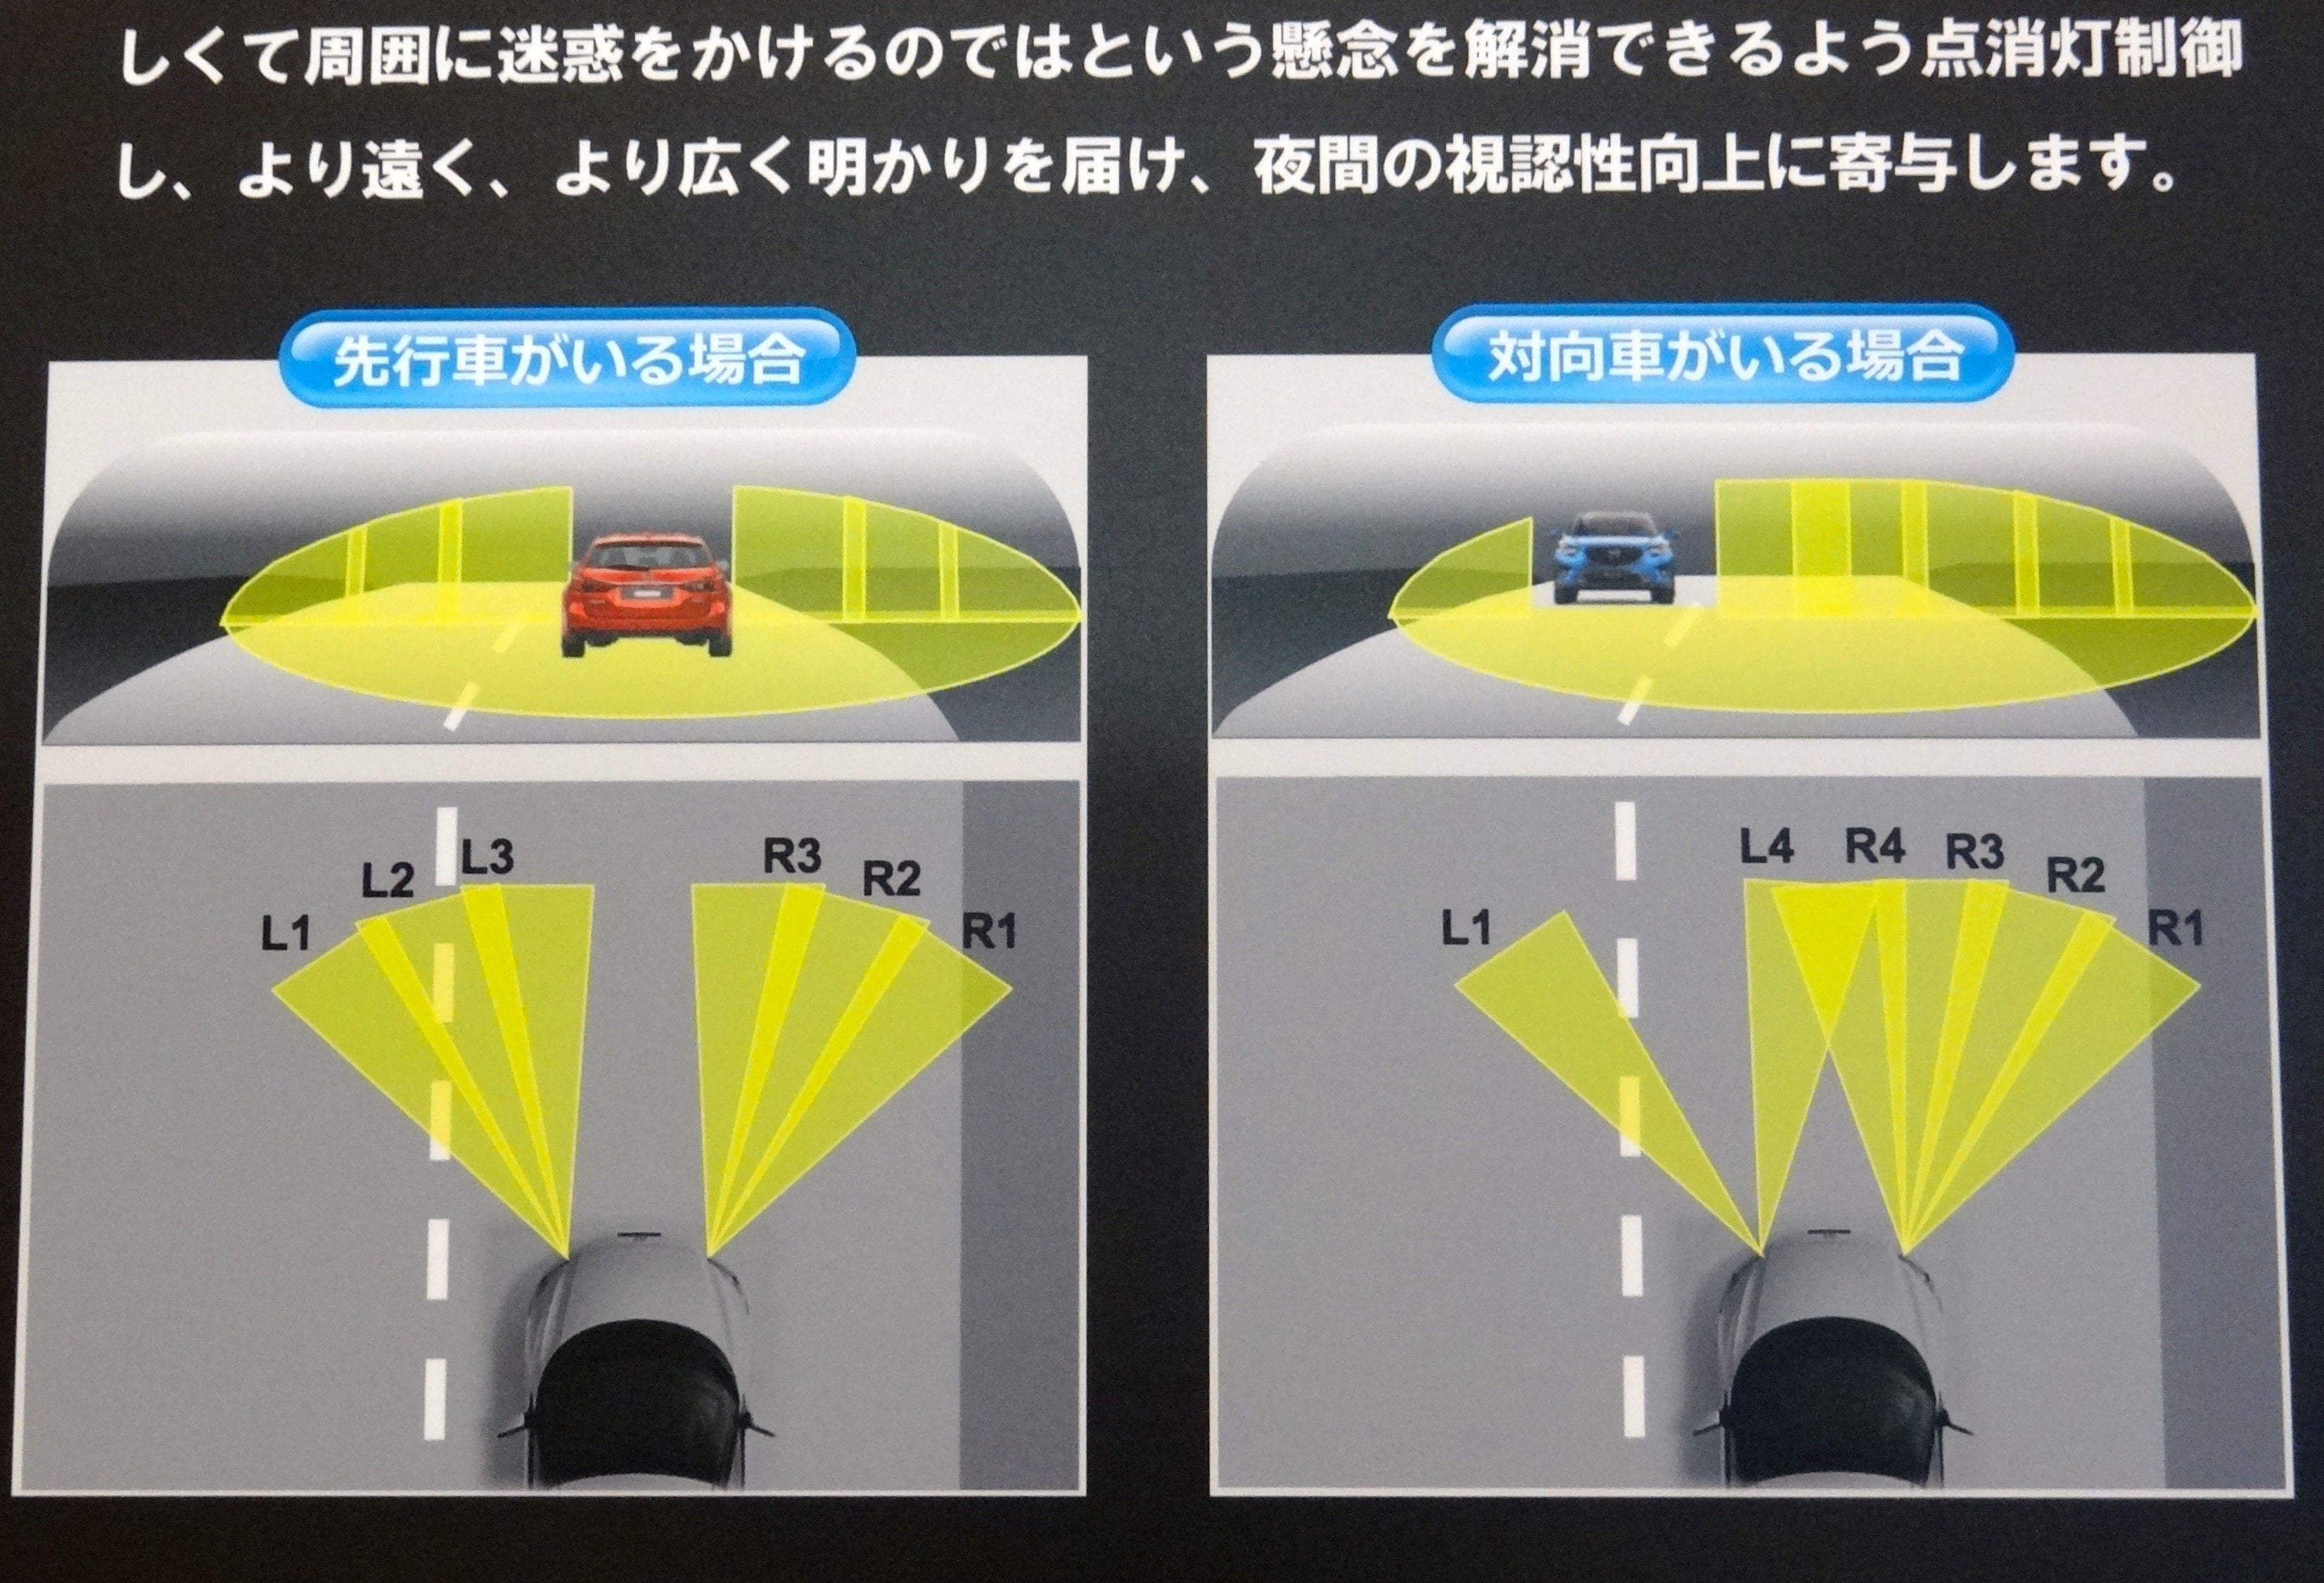 Adaptive Headlights Diagram Application Wiring Lighting System For Automobiles Mazda S Let You Keep Your High Beams On Without Rh Pcworld Com